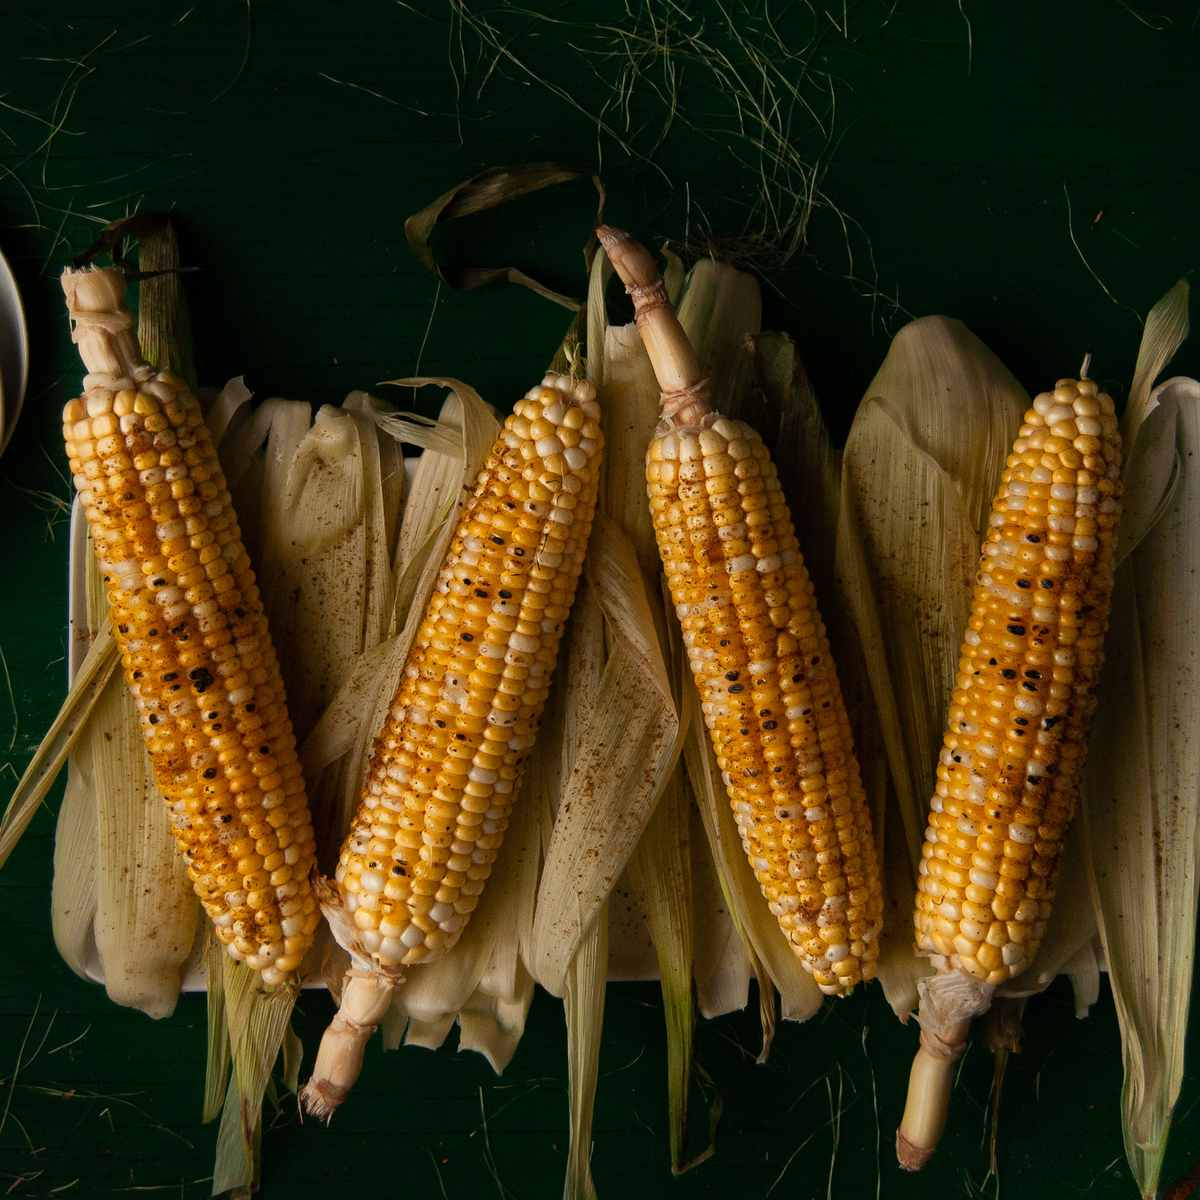 overhead shot of four ears of corn on the cob with old bay seasoning